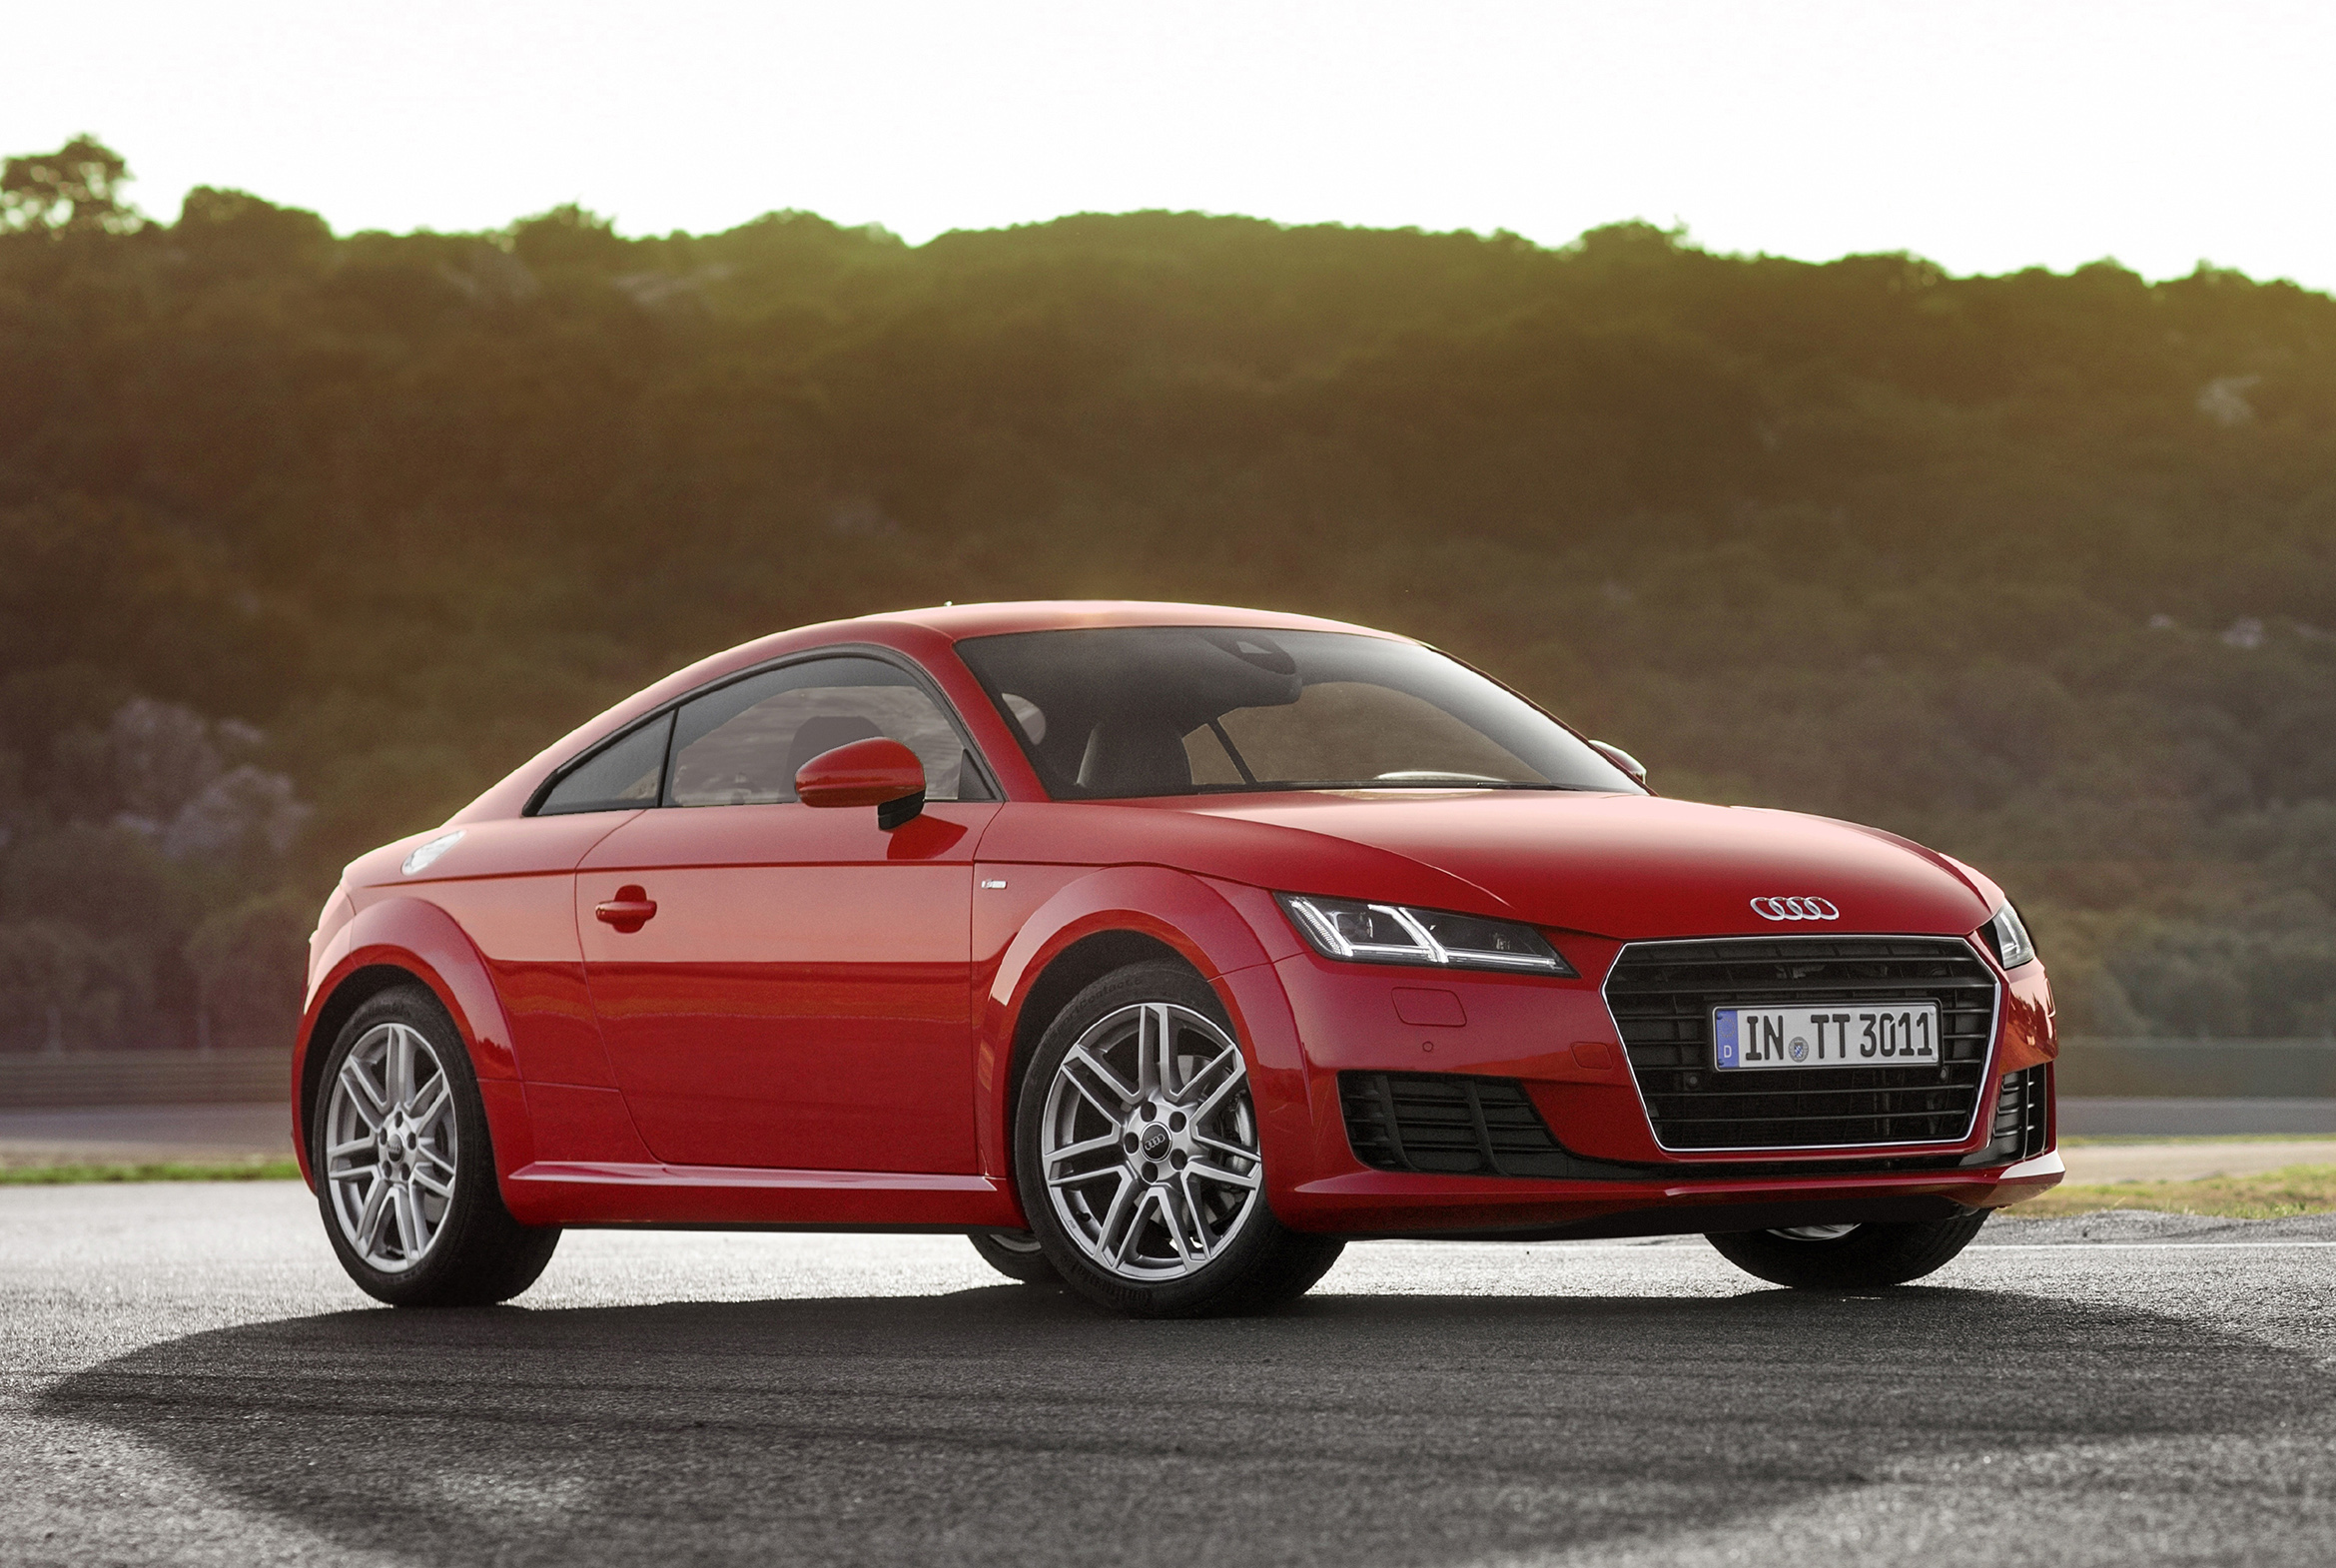 2015 audi tt coupe and roadster get more affordable 180 hp 1.8